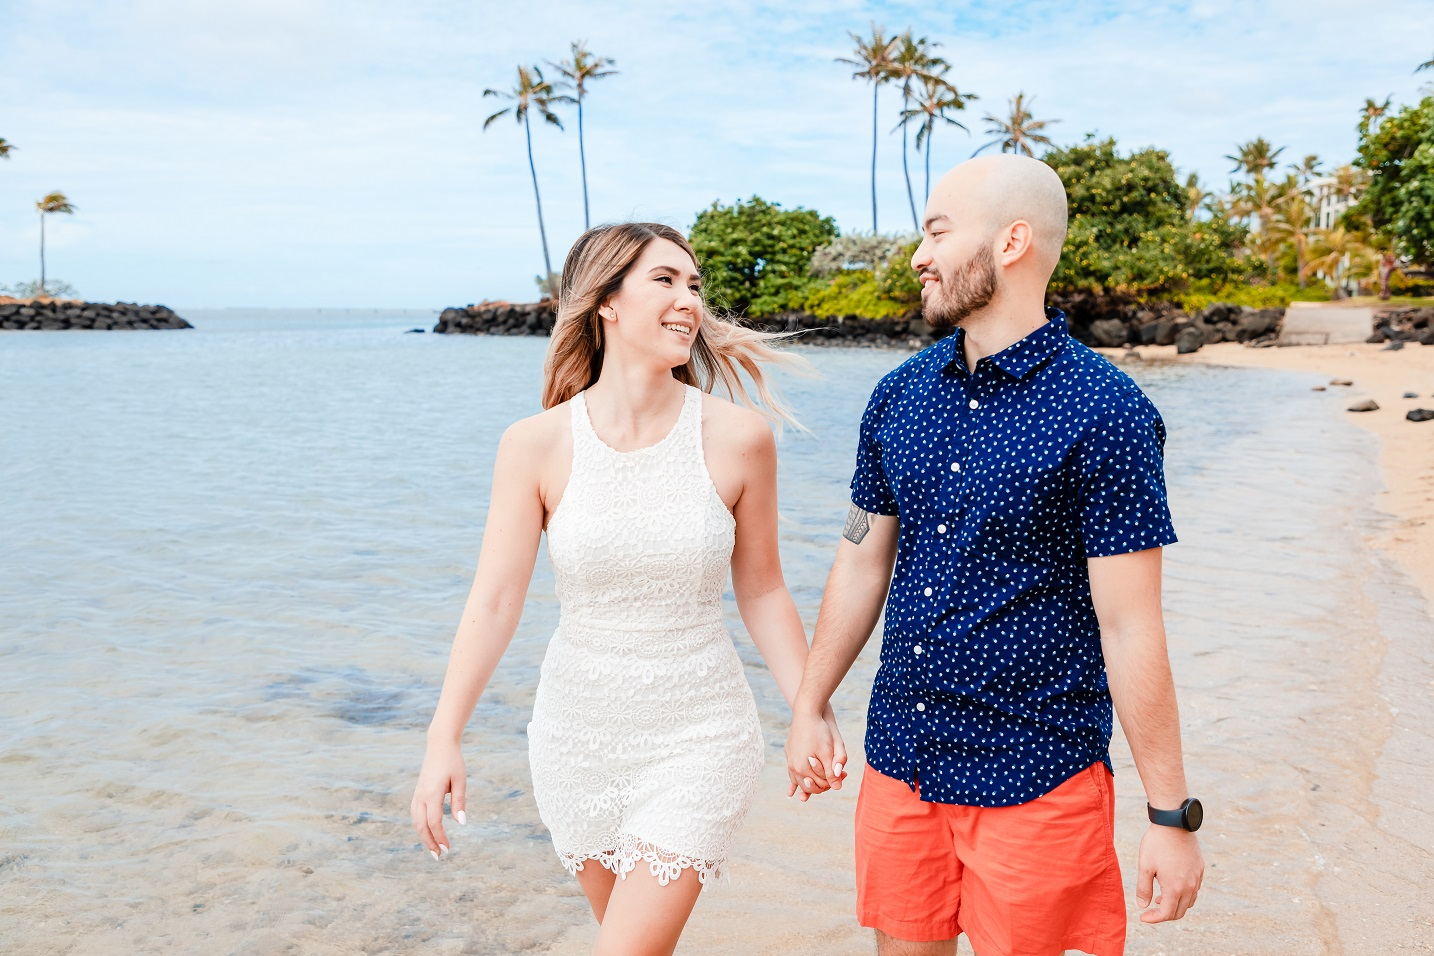 engaged couple walking on beach portrait